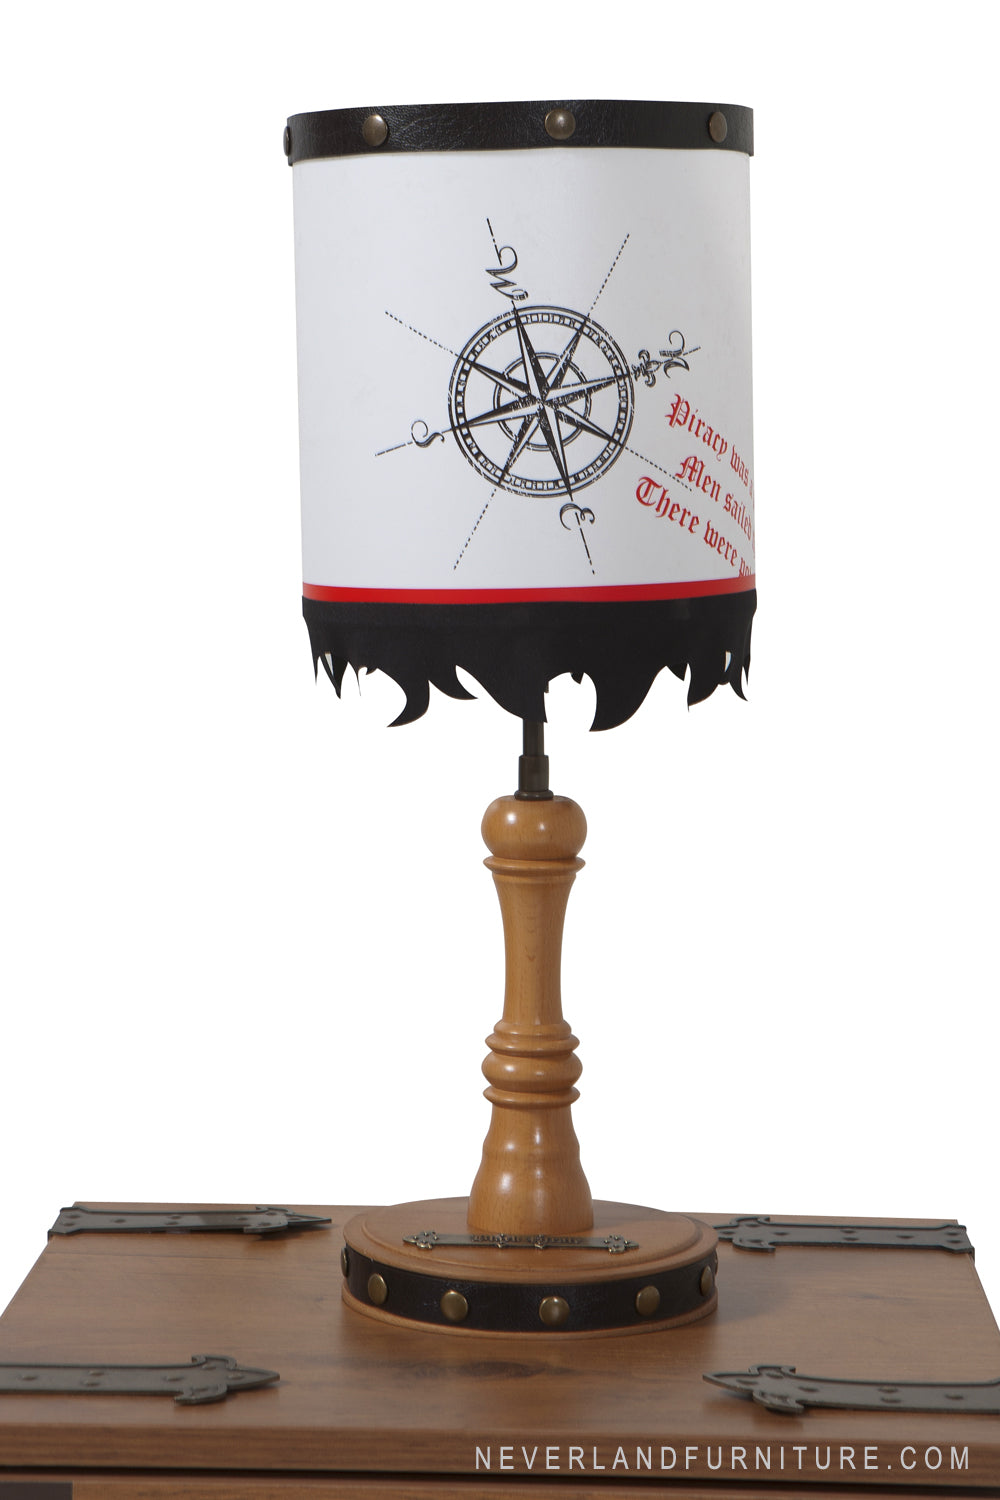 Pirate Accessories For Bedroom Beautifully Constructed Table Lamp For Kids Neverland Furniturecom